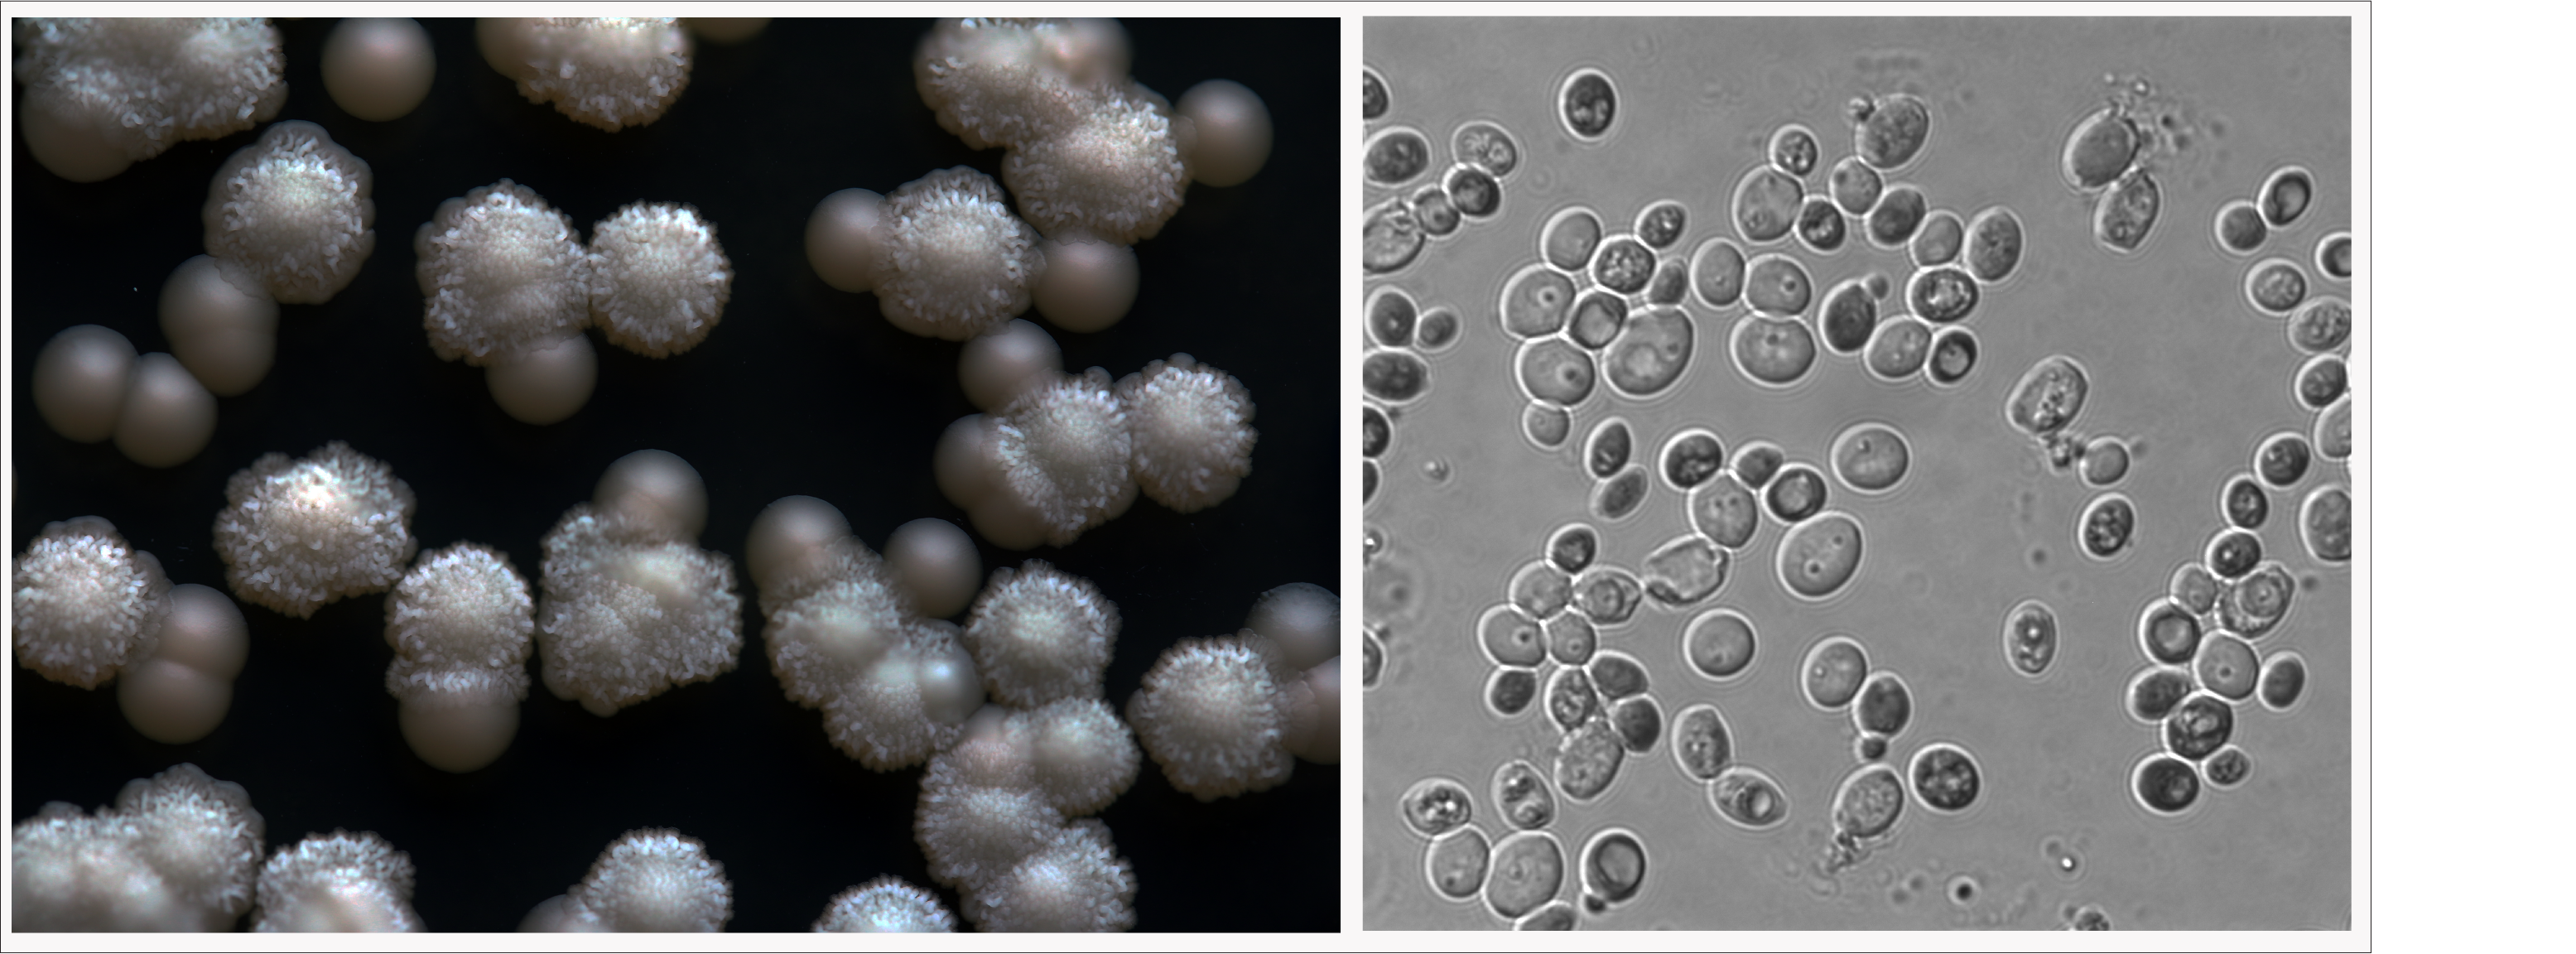 Left: K. servazzii are the smooth, tan colonies. Right: K. servazzii at magnification.